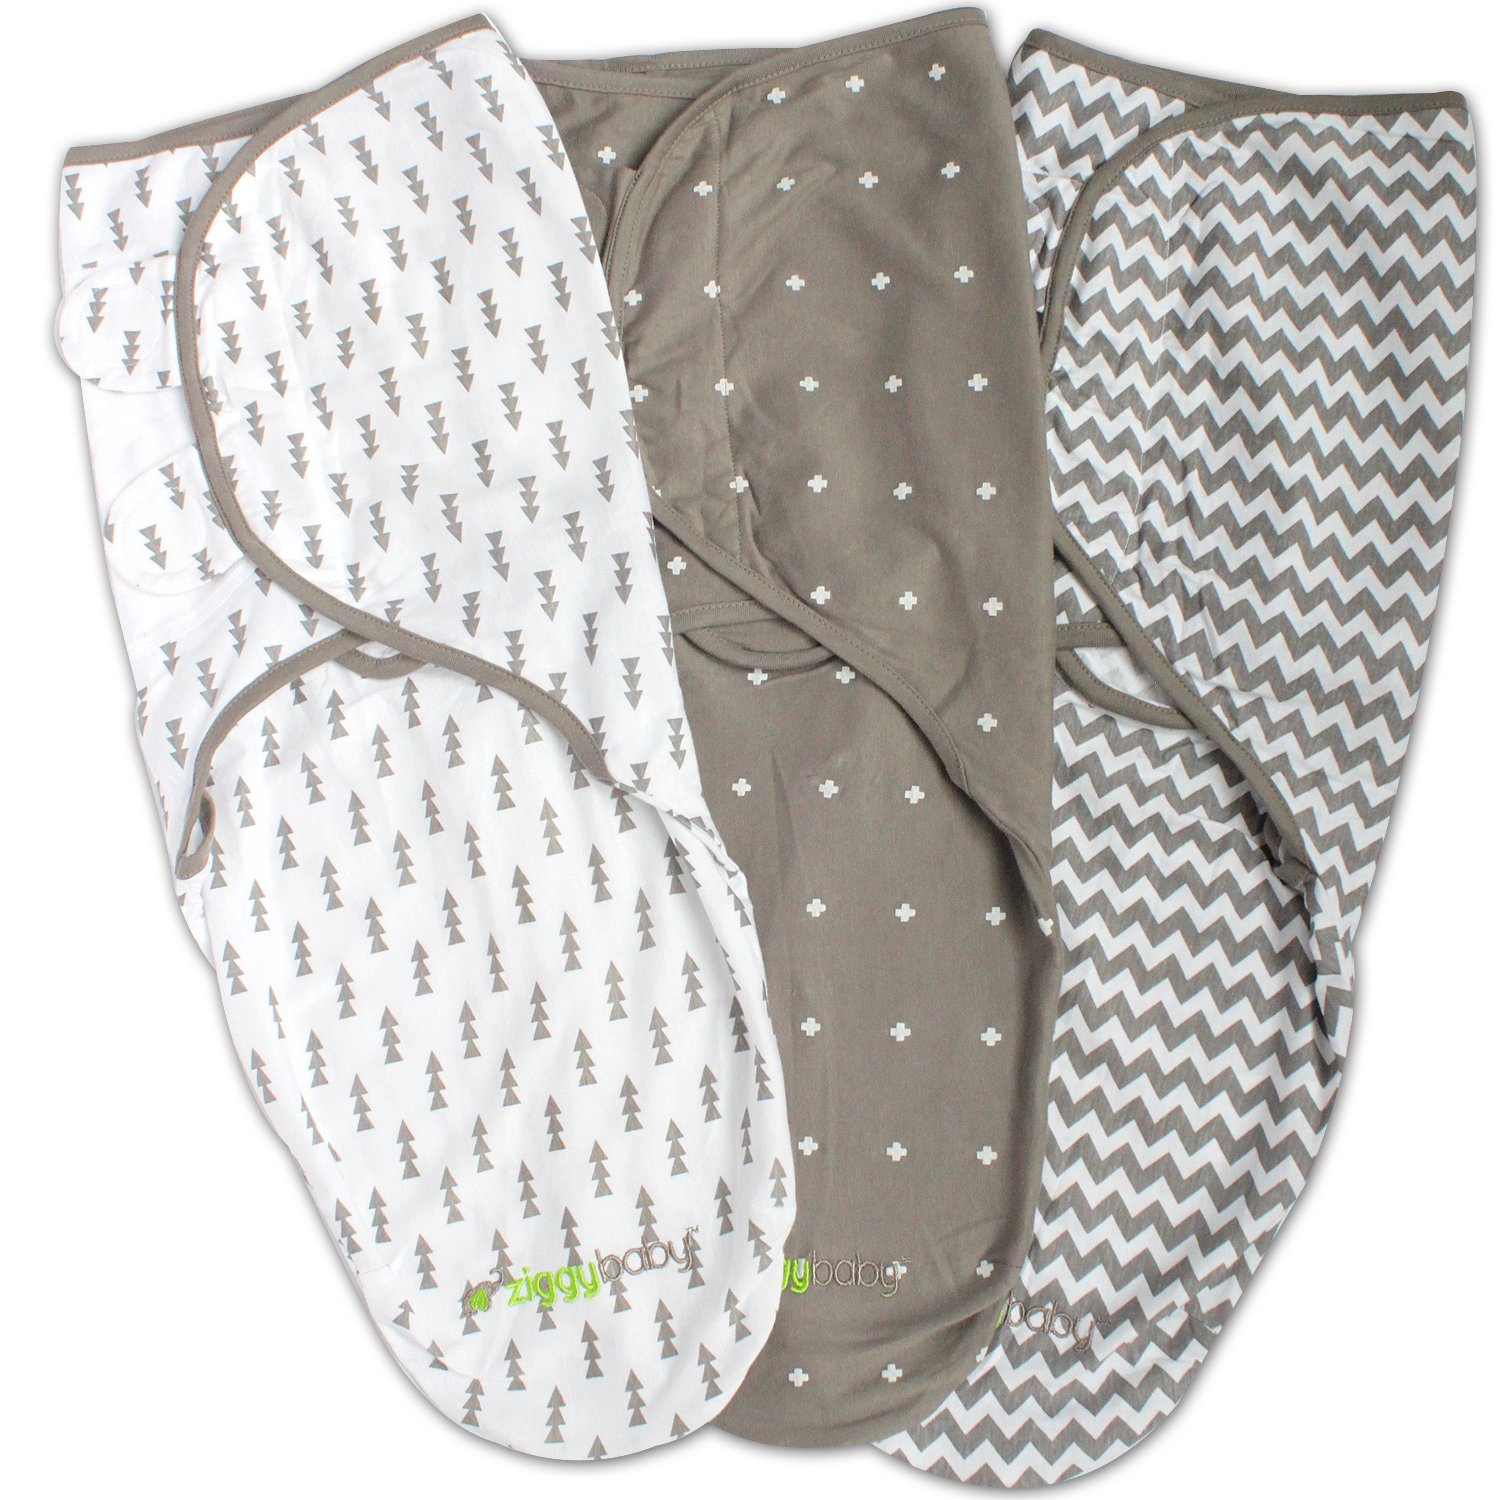 Swaddle Blanket, Adjustable Infant Baby Wrap, Soft Cotton in Ultra Grey